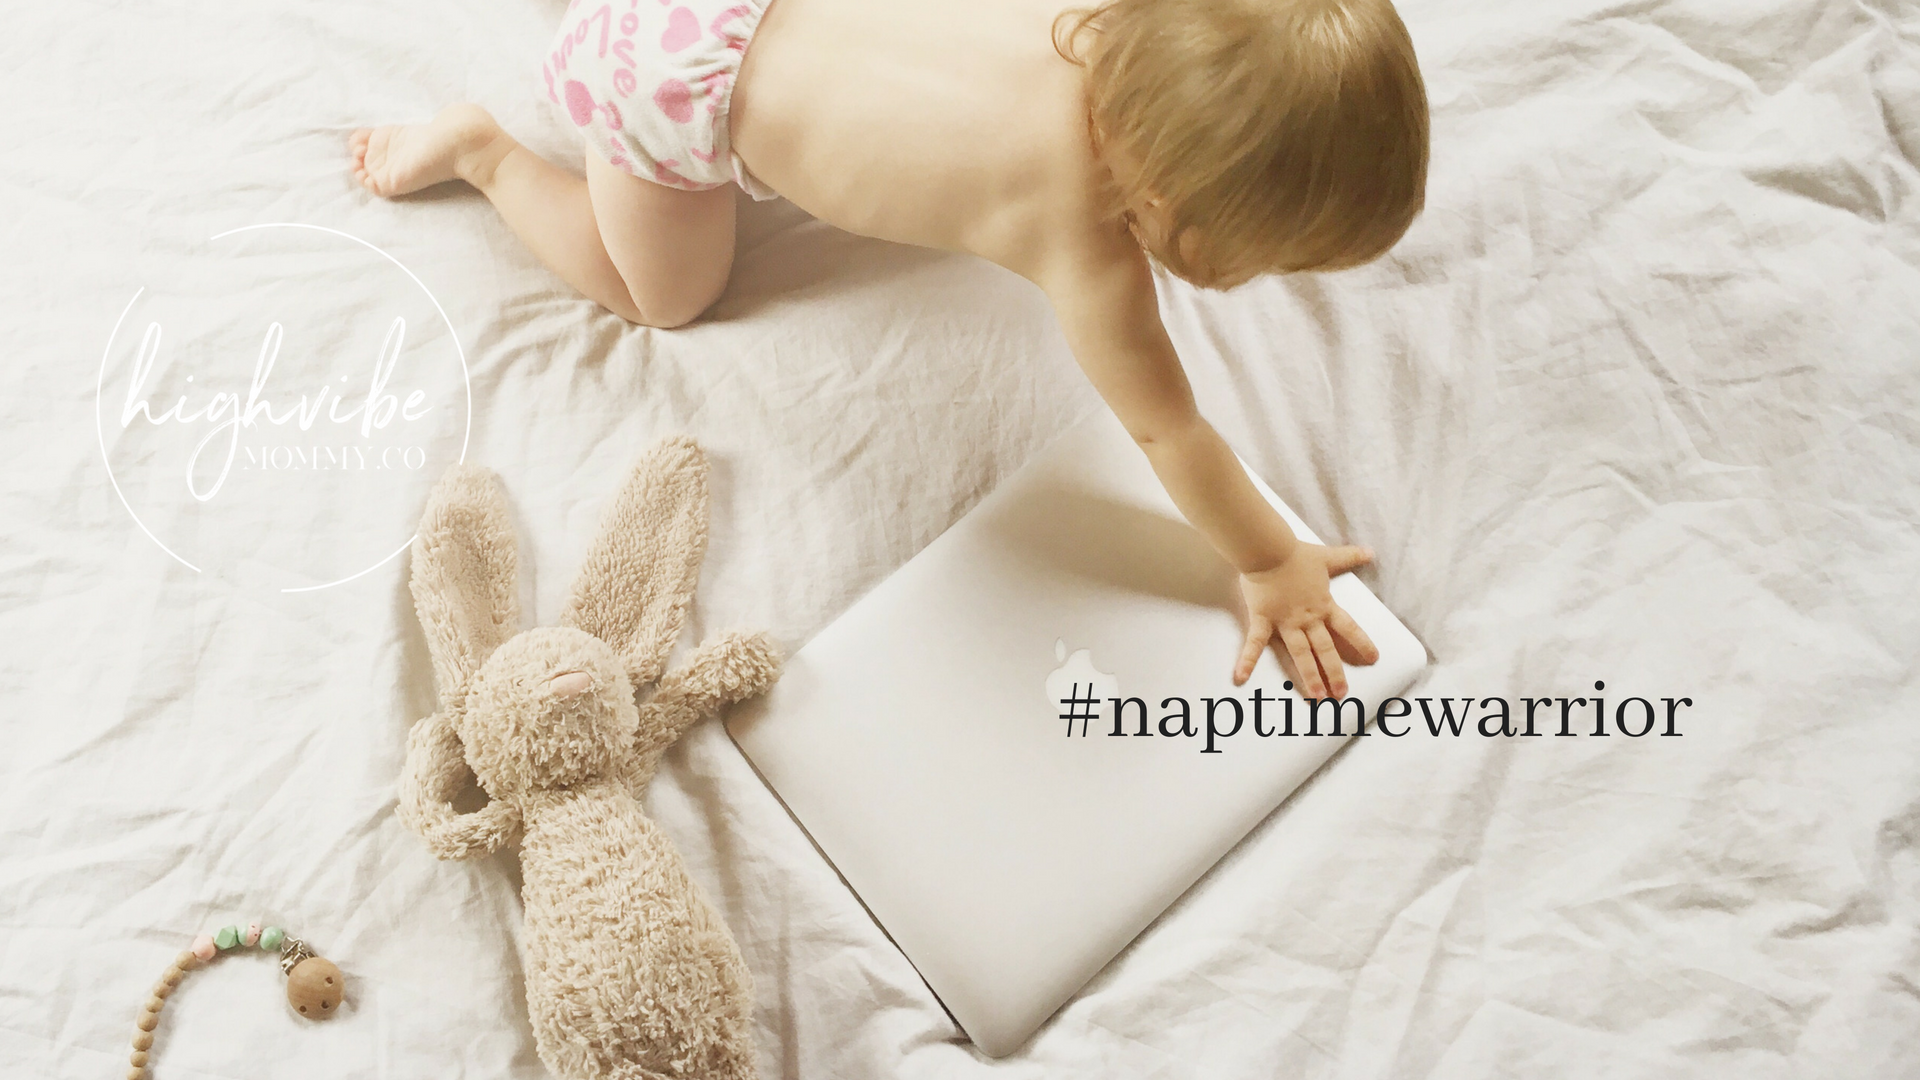 join other nap time warriors - Official Facebook Group